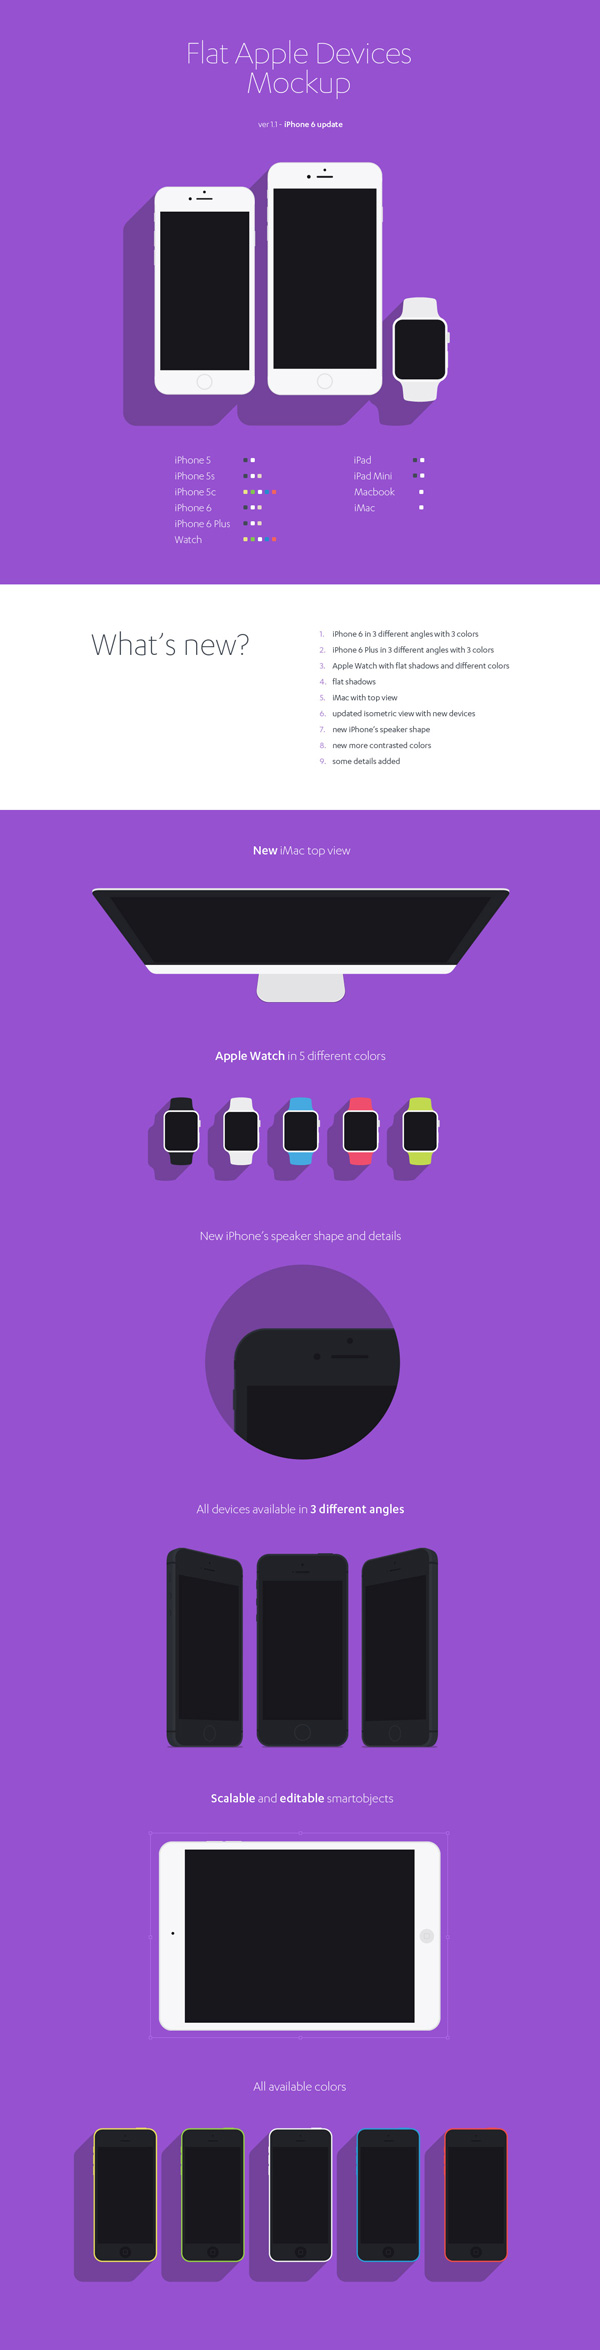 2.Flat-Apple-Devices-Mockup